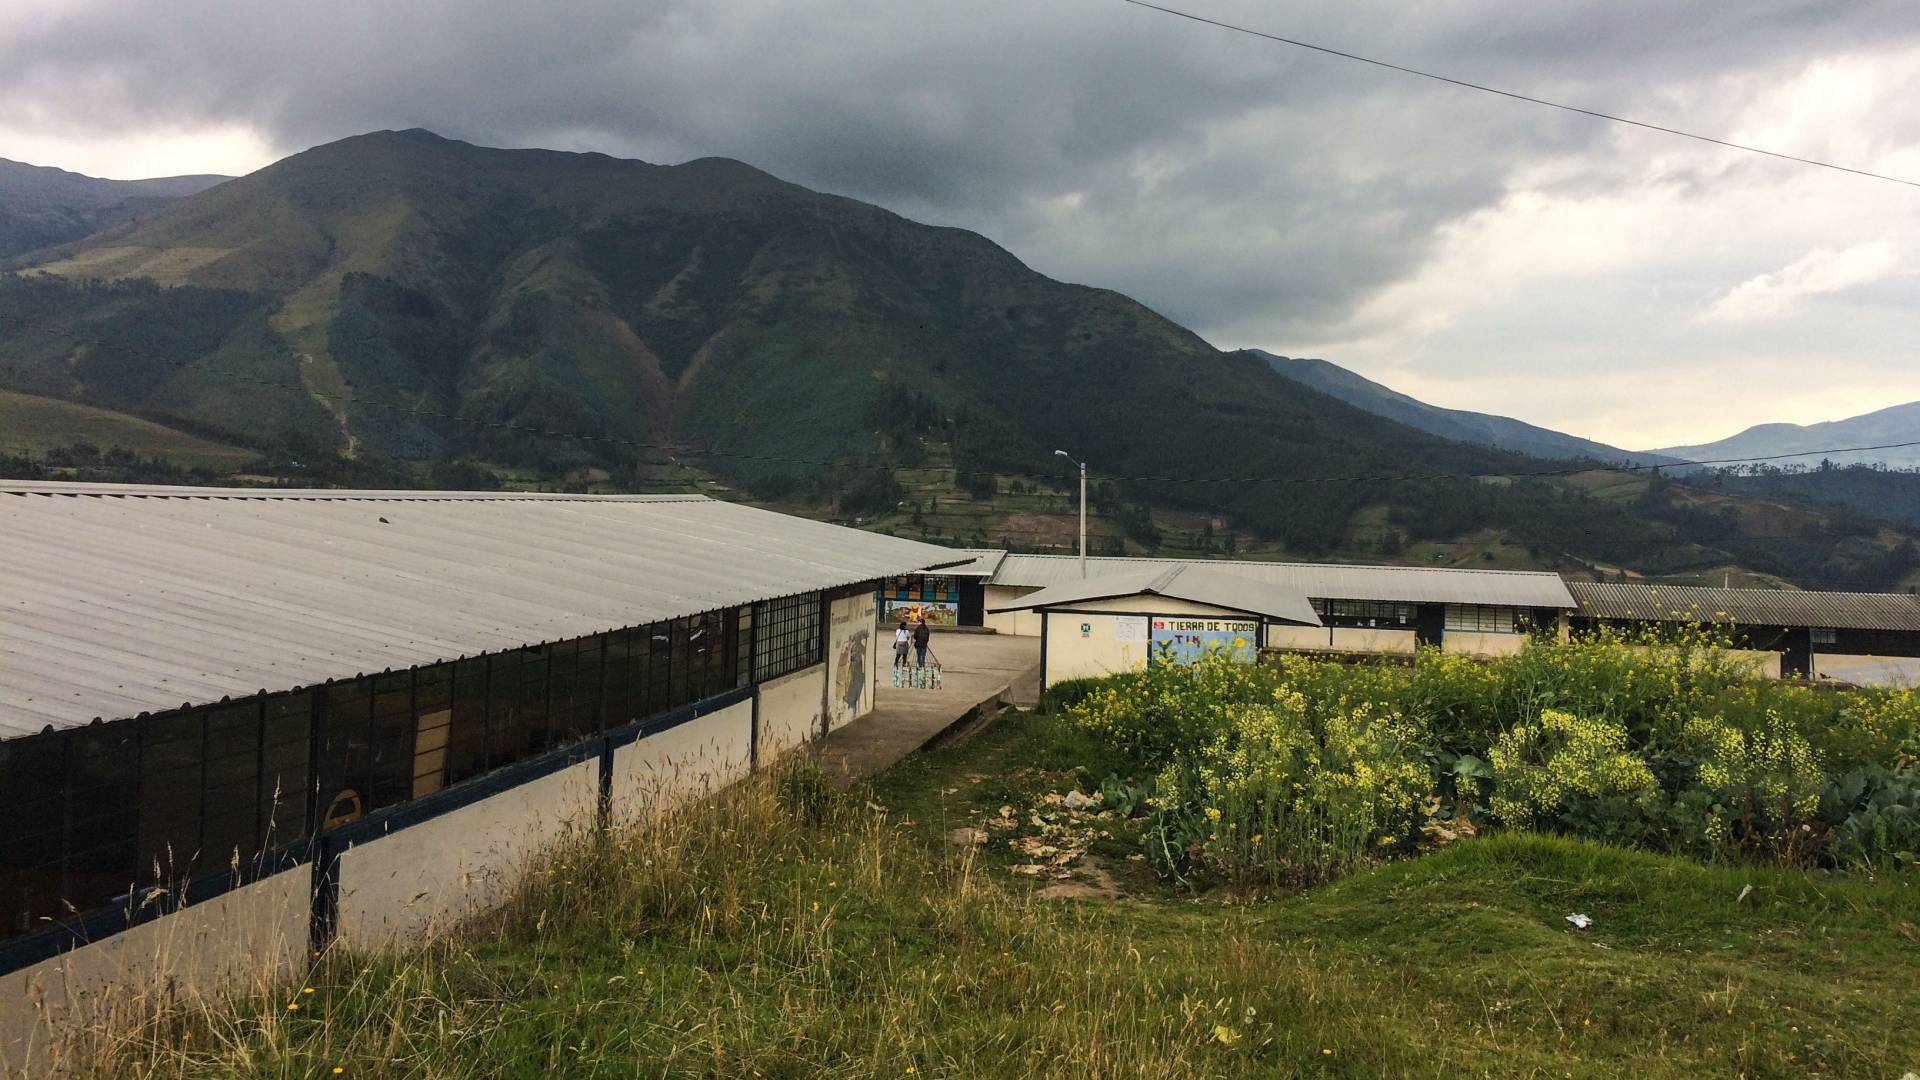 School building with mountains in background in Ecuador